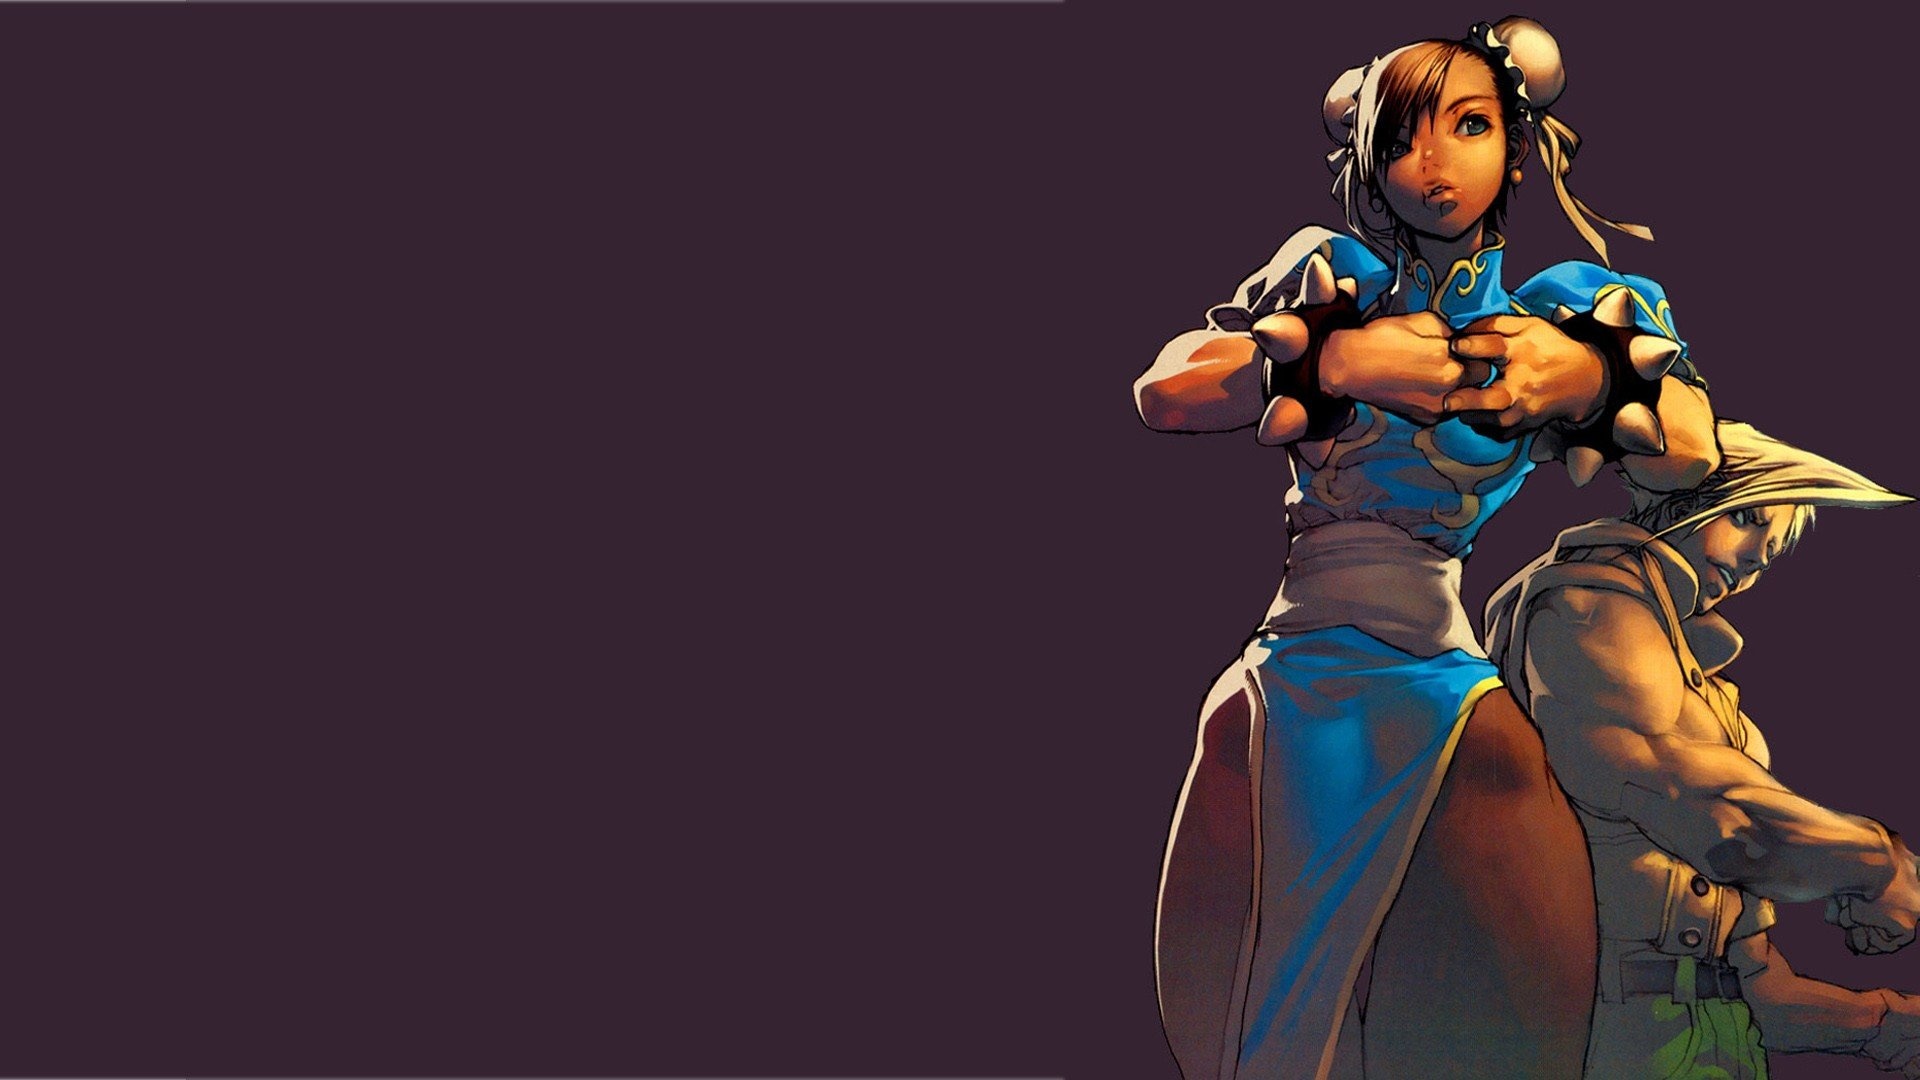 Chun Li Guile Street Fighter Illustration Purple Background Hd